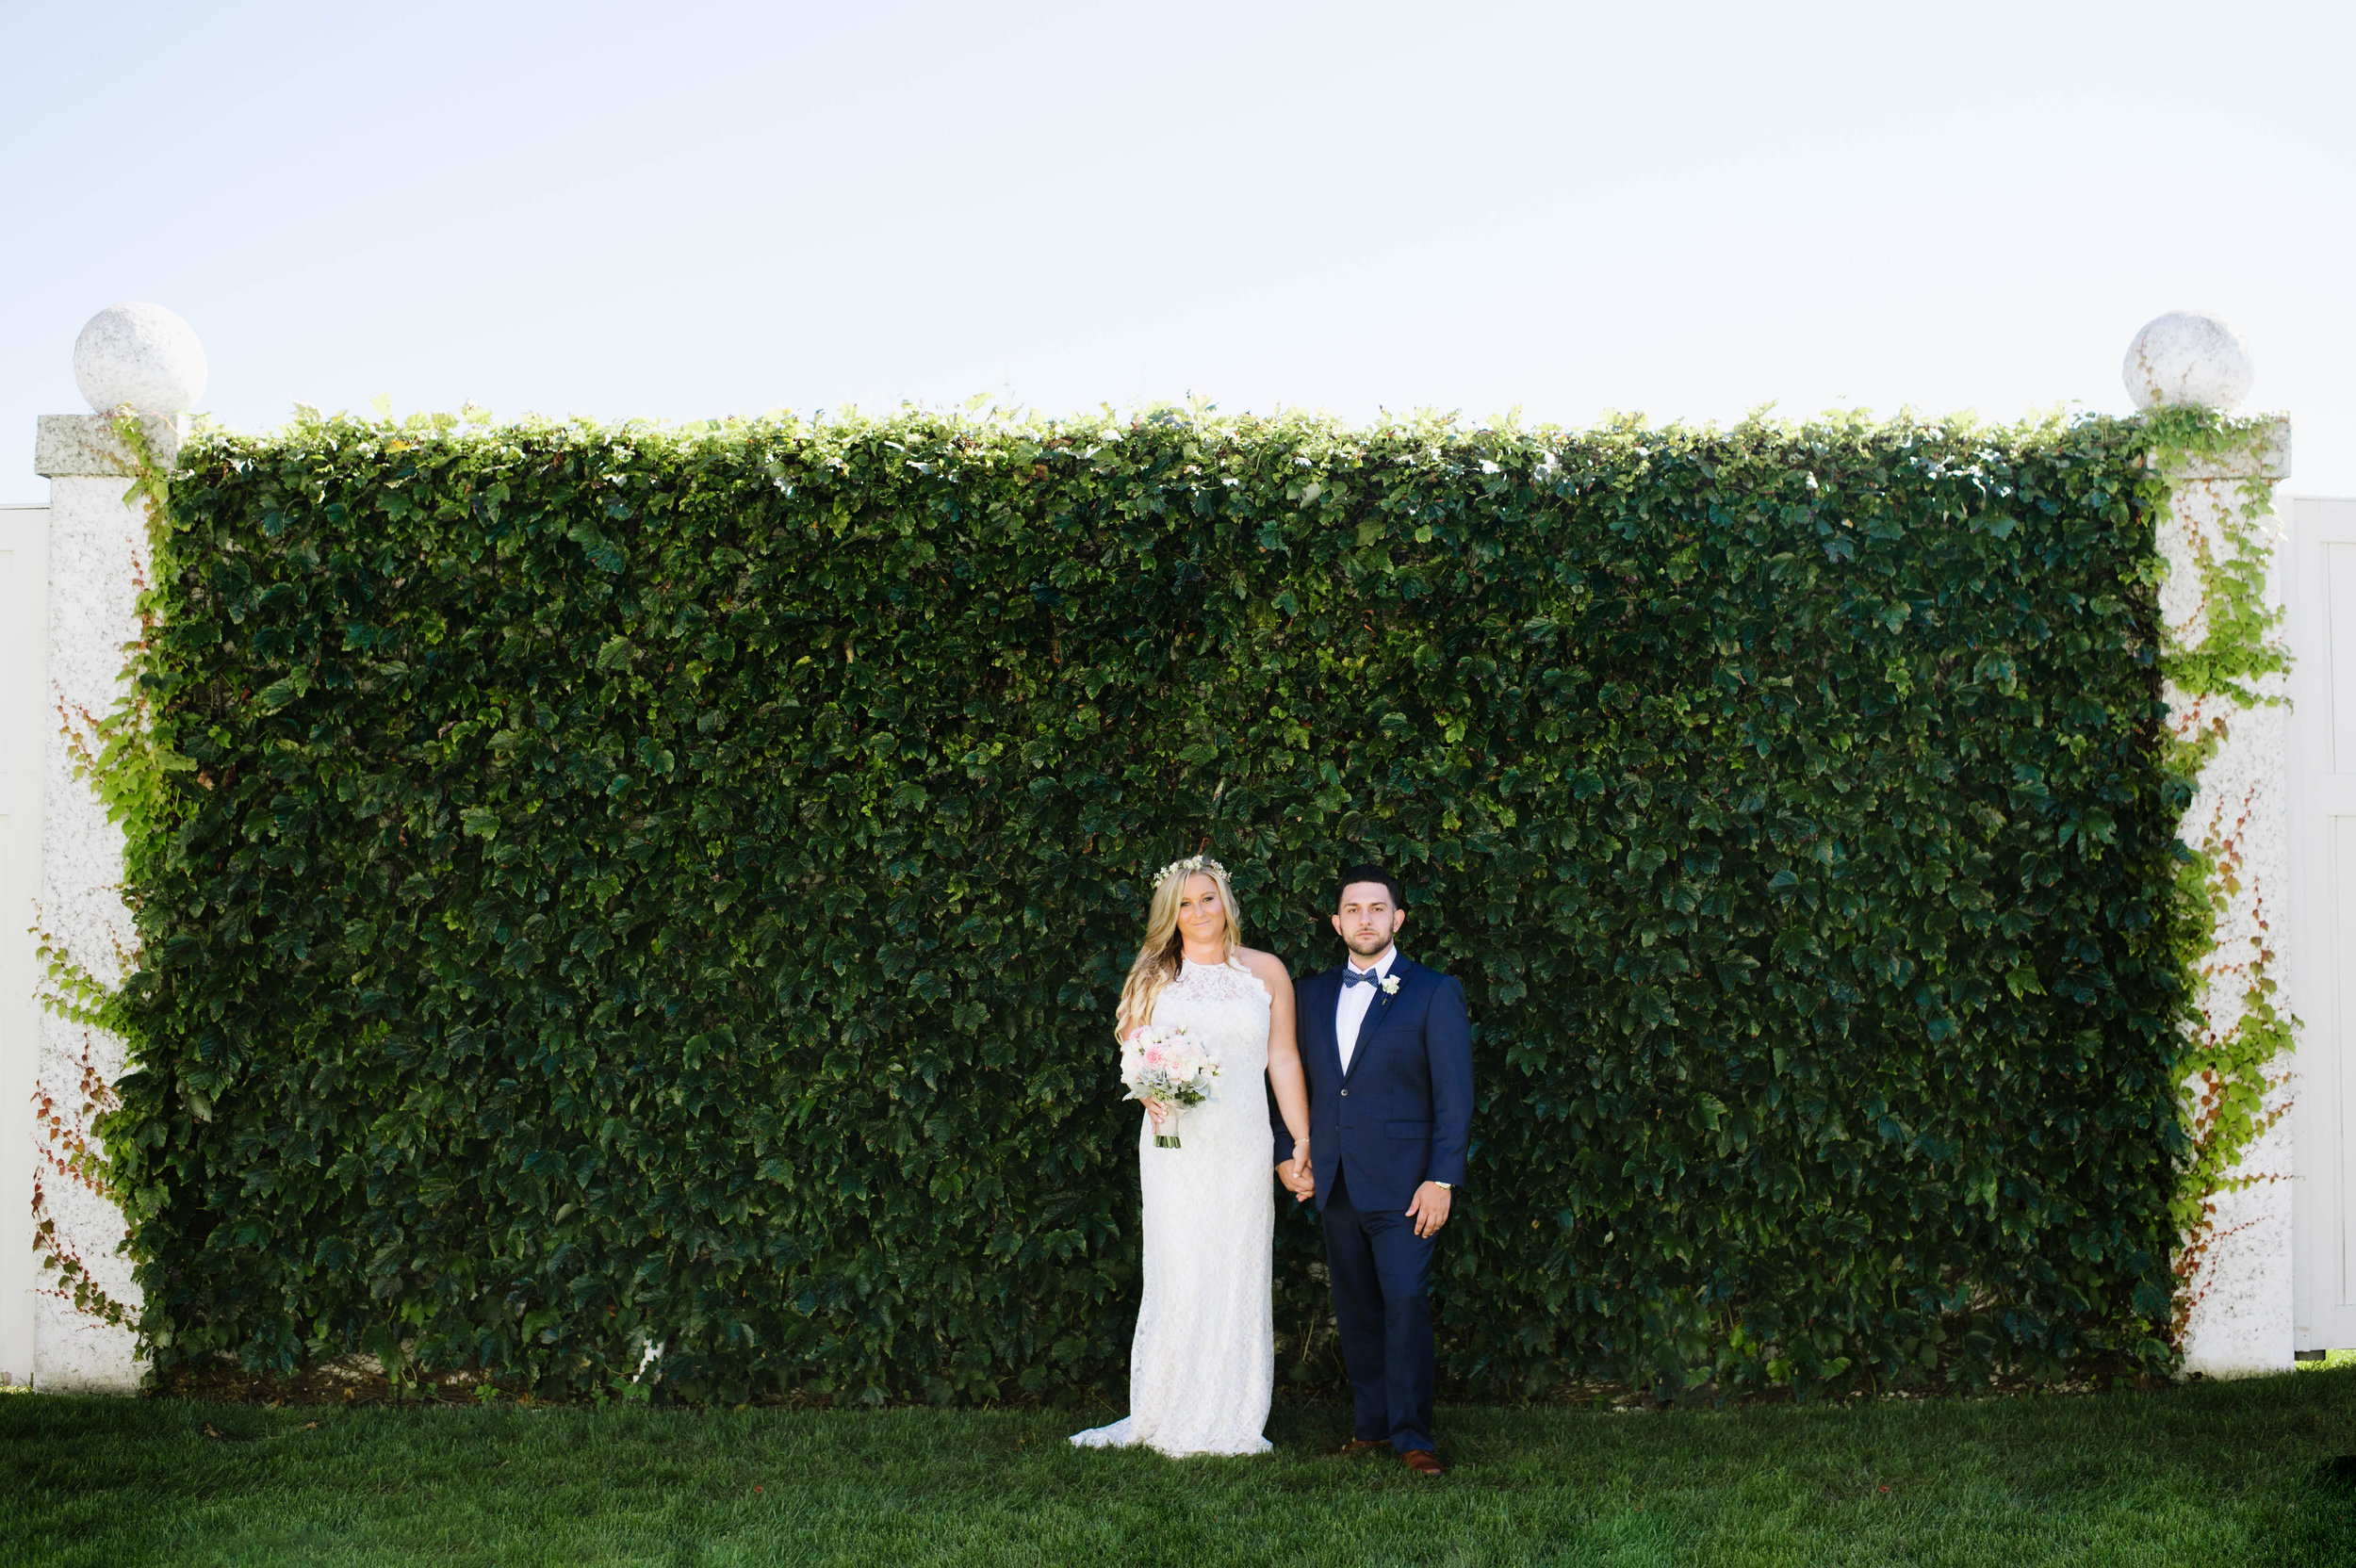 Newport_Belle_Mar_Wedding003.jpg